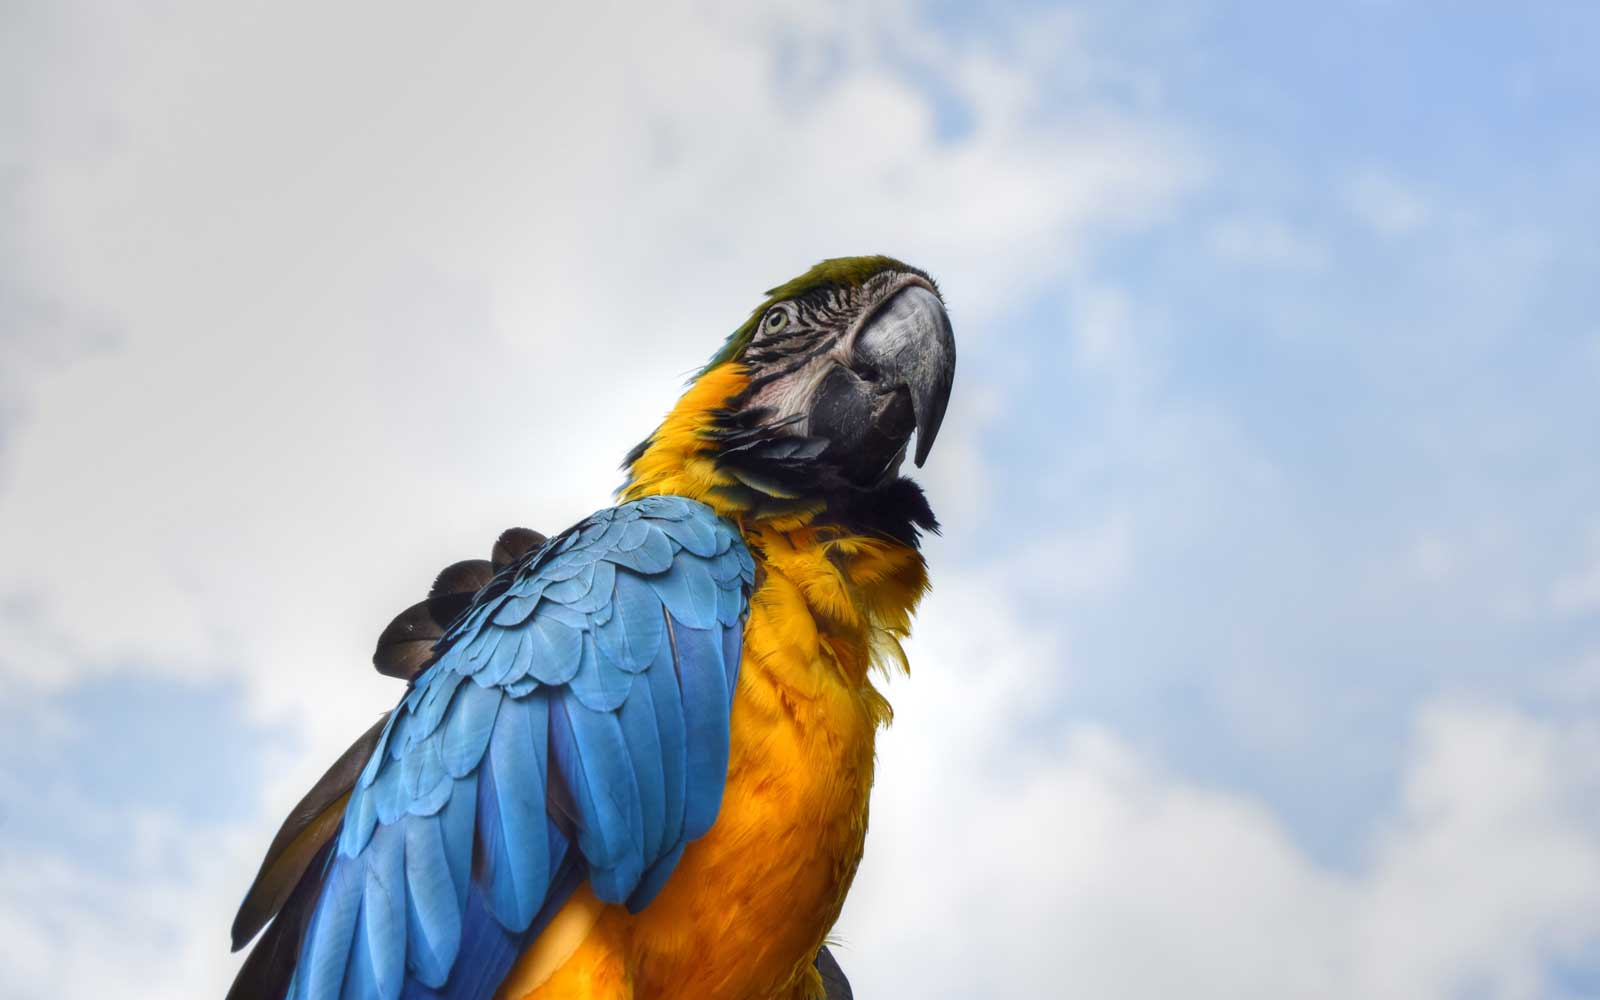 Low Angle View Of Gold And Blue Macaw Against Sky